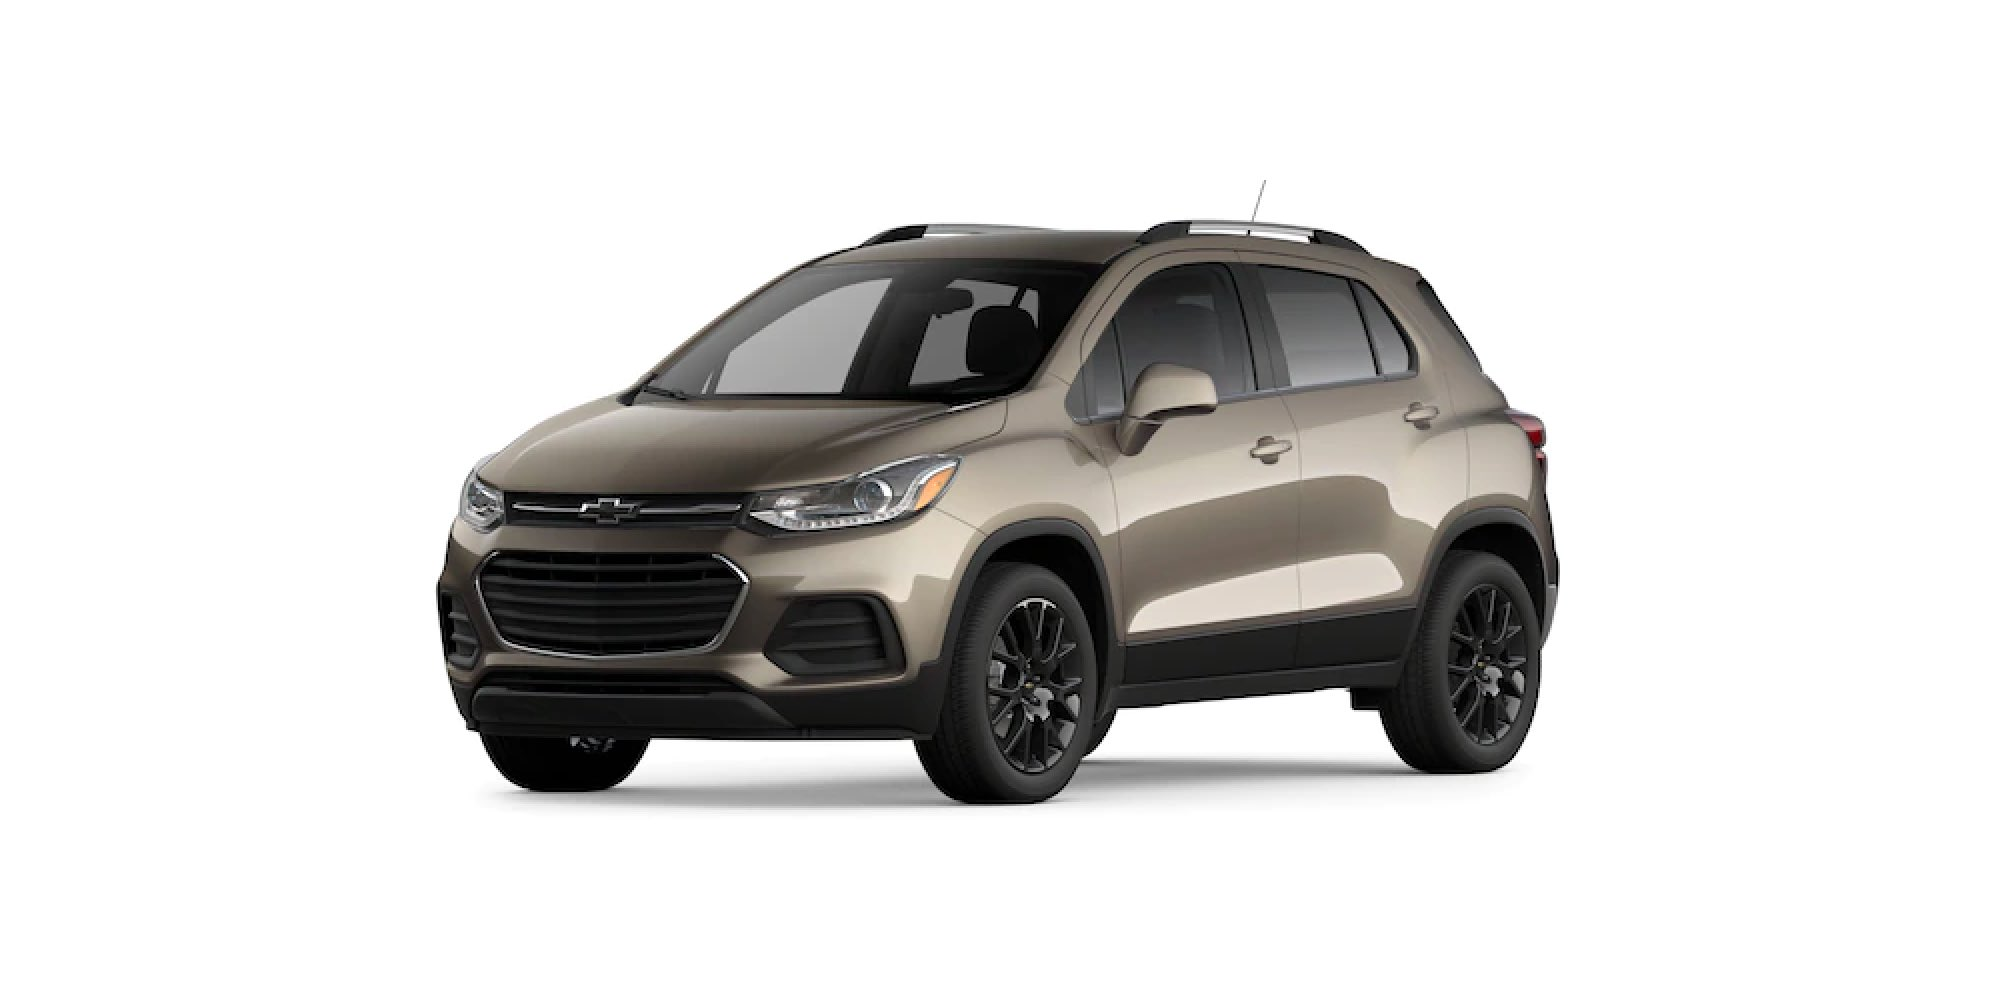 2021 Chevy Trax in STONE GRAY METALLIC